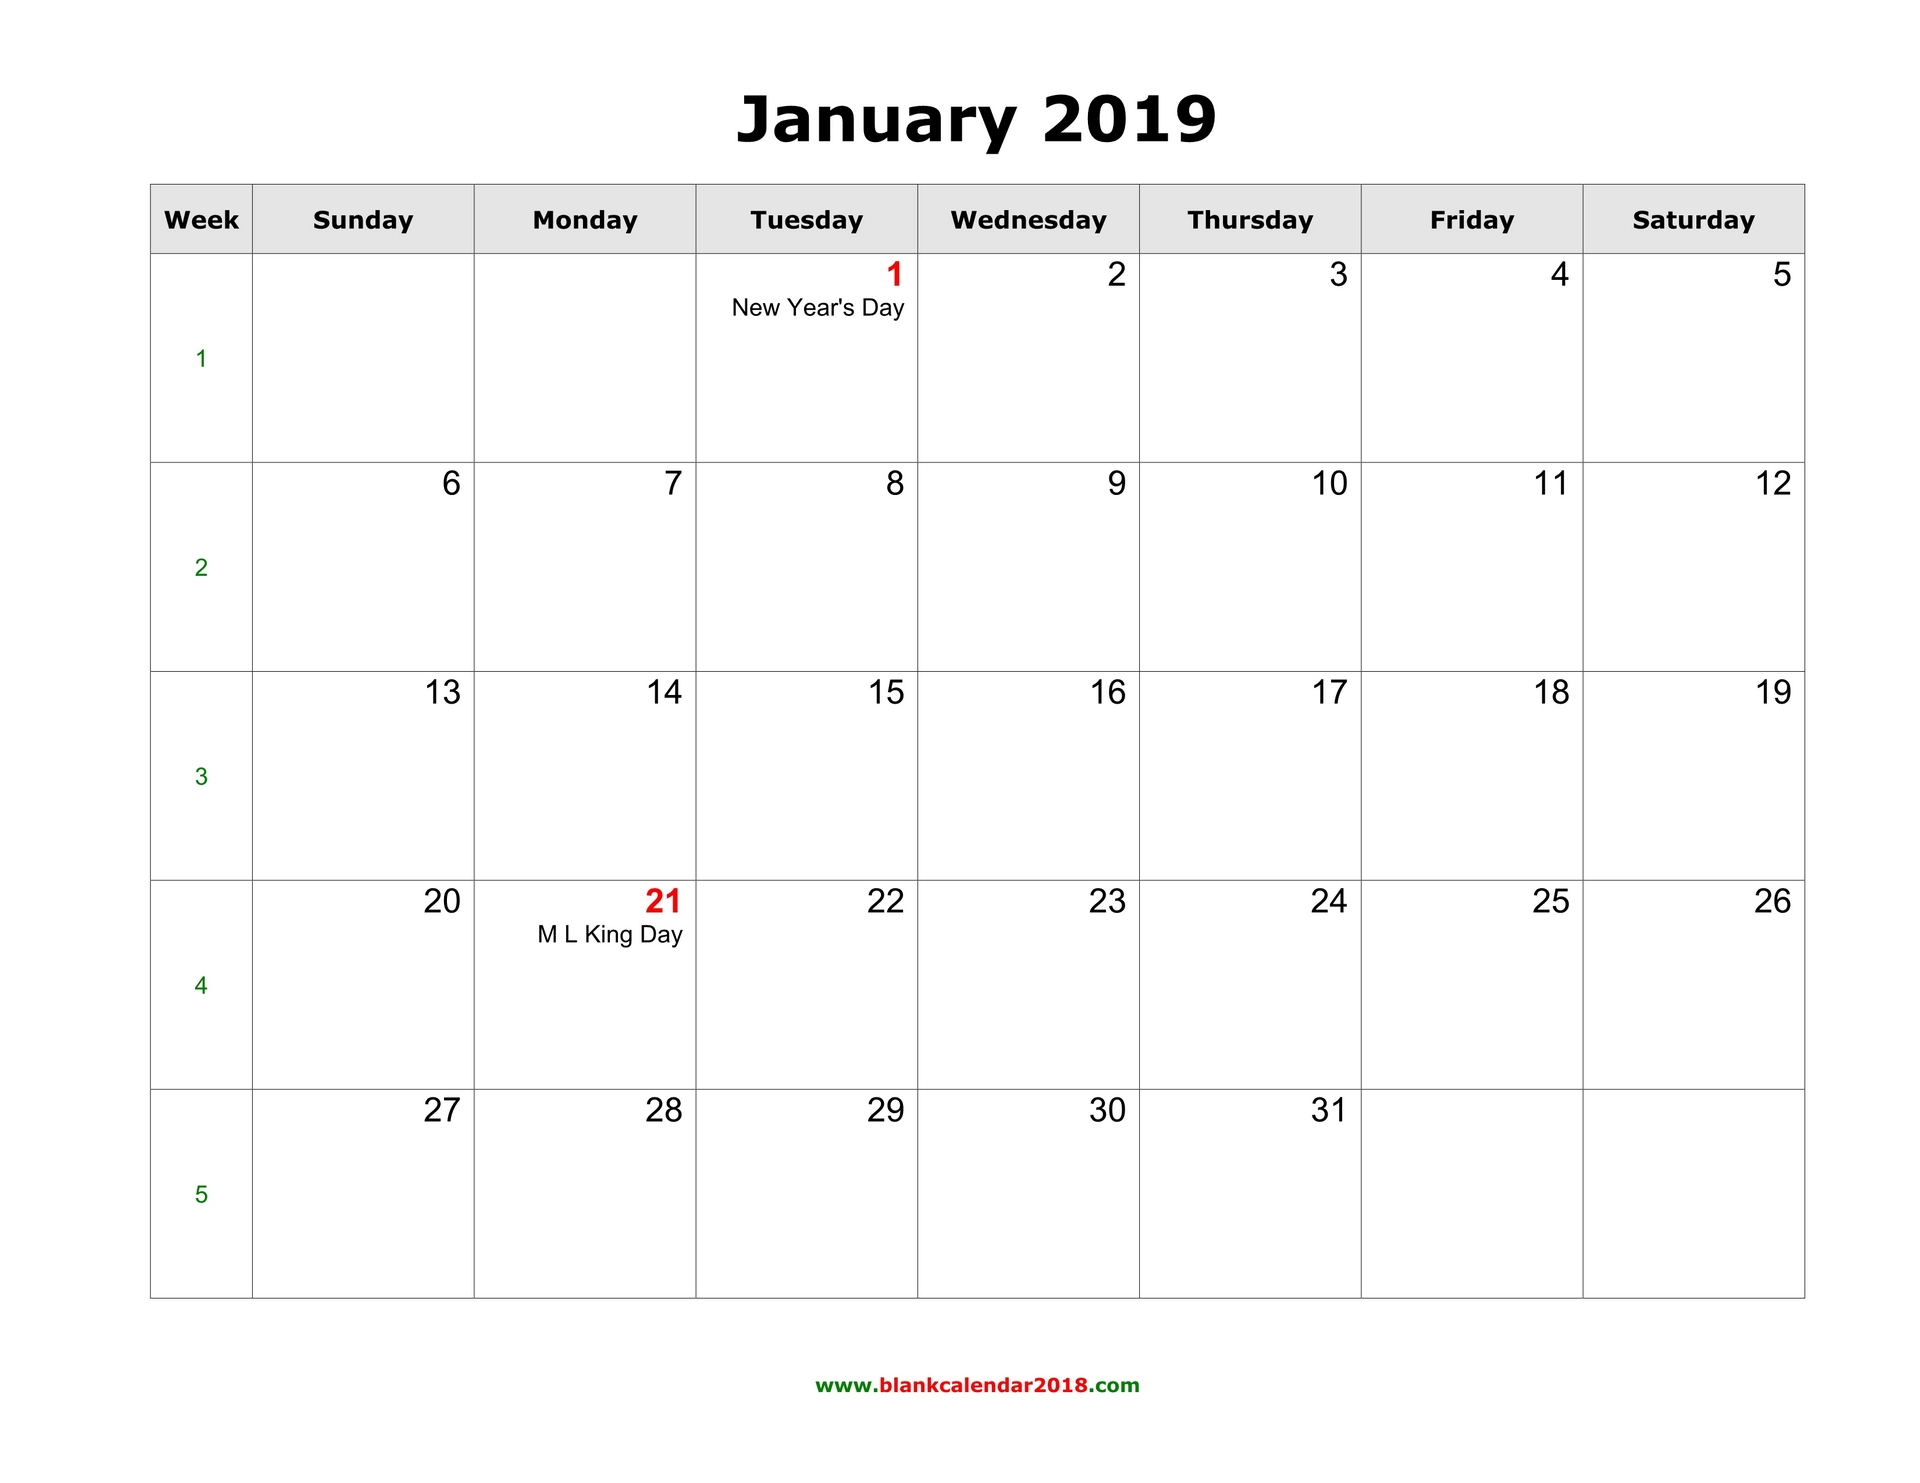 2019 Calendar Printable Word Blank Calendar for January 2019